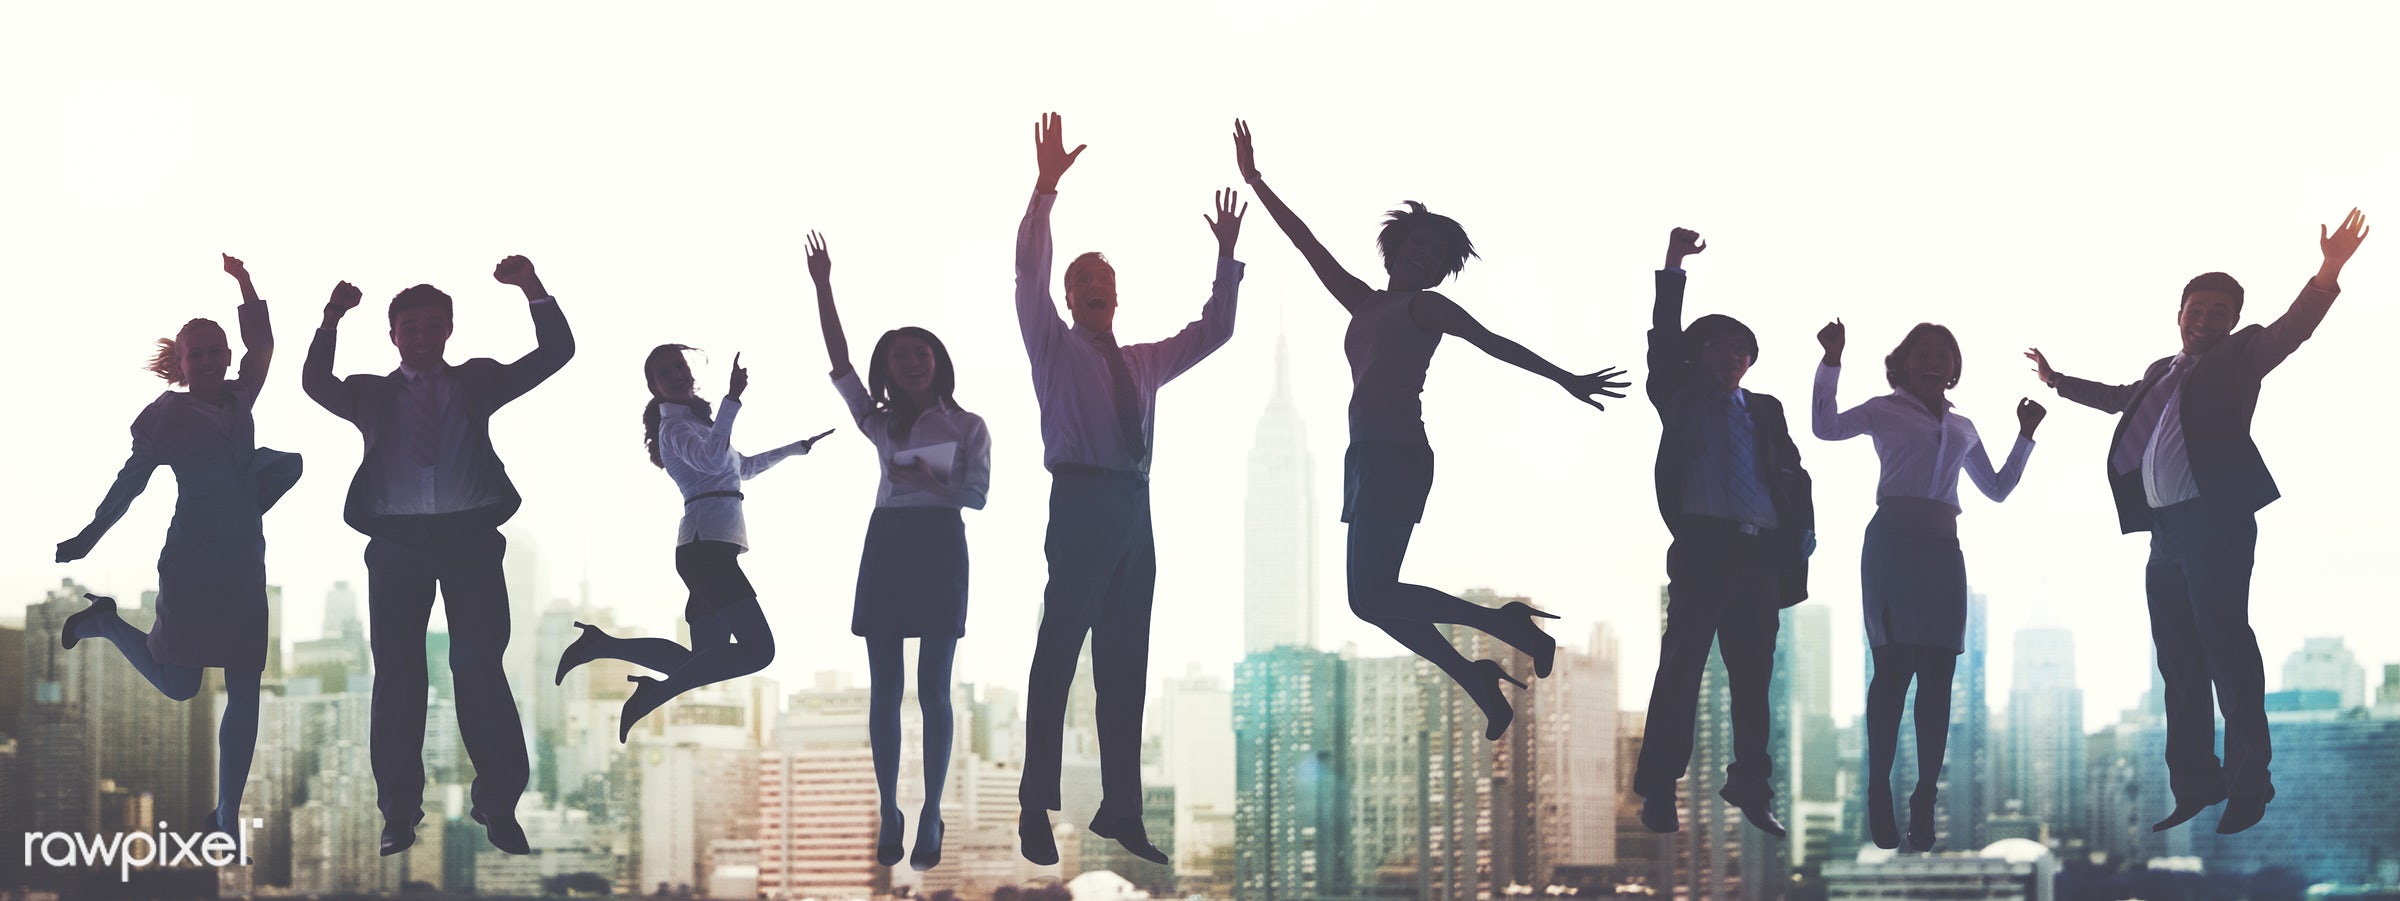 jumping, achievement, arms raised, building, business, business people, businessmen, businesswomen, celebration, cheerful,...